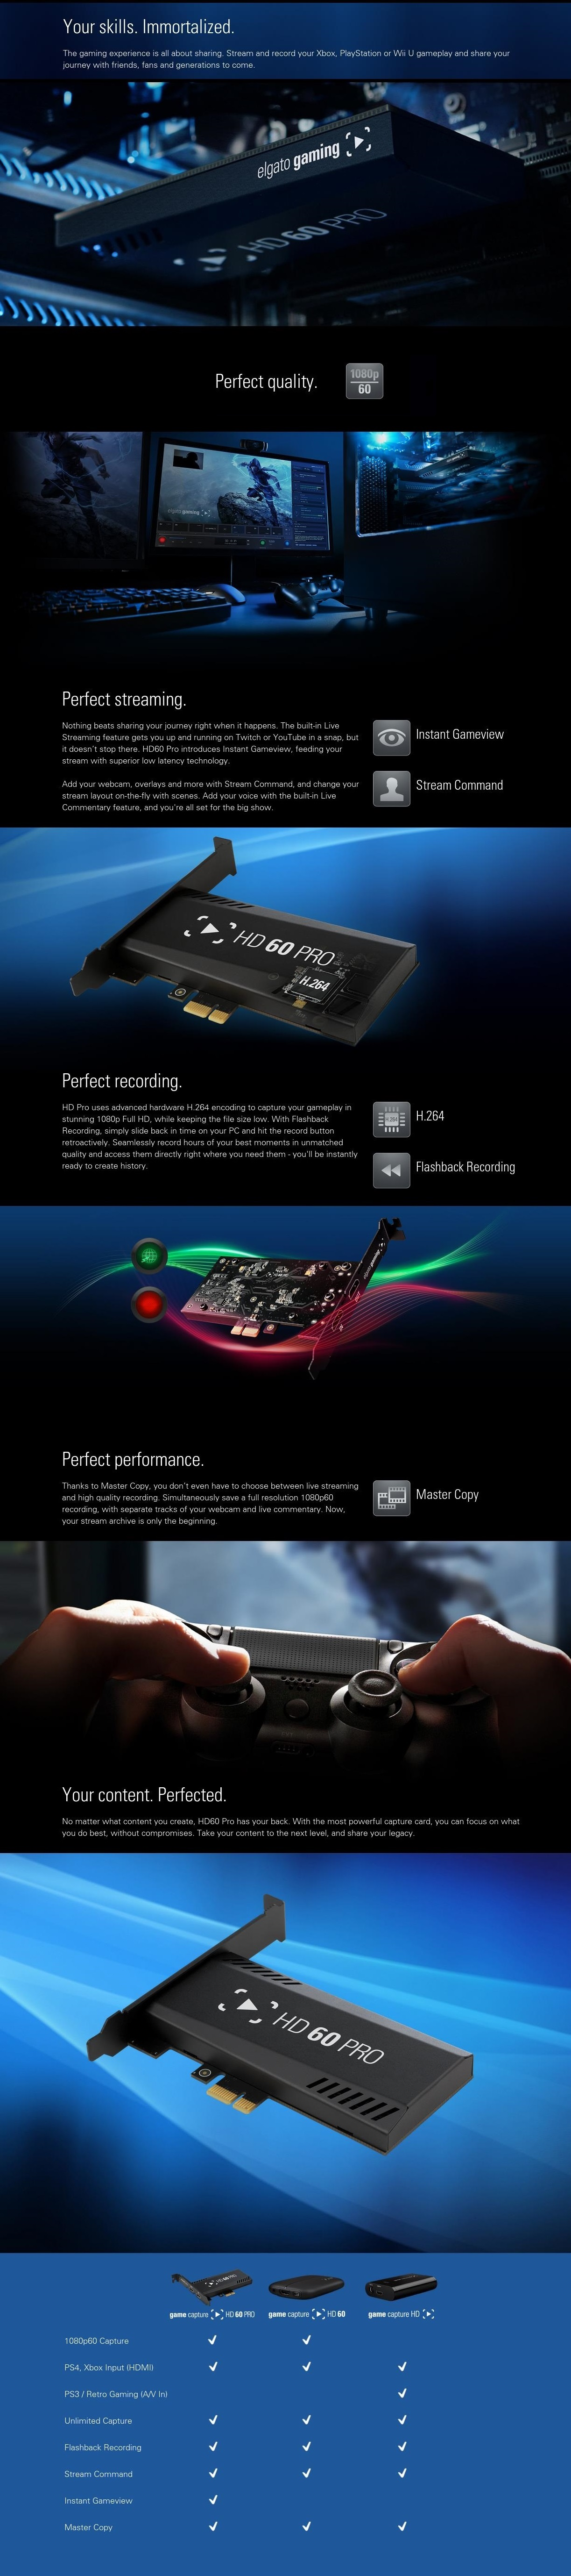 A large marketing image providing additional information about the product Elgato Game Capture HD60 Pro - Additional alt info not provided